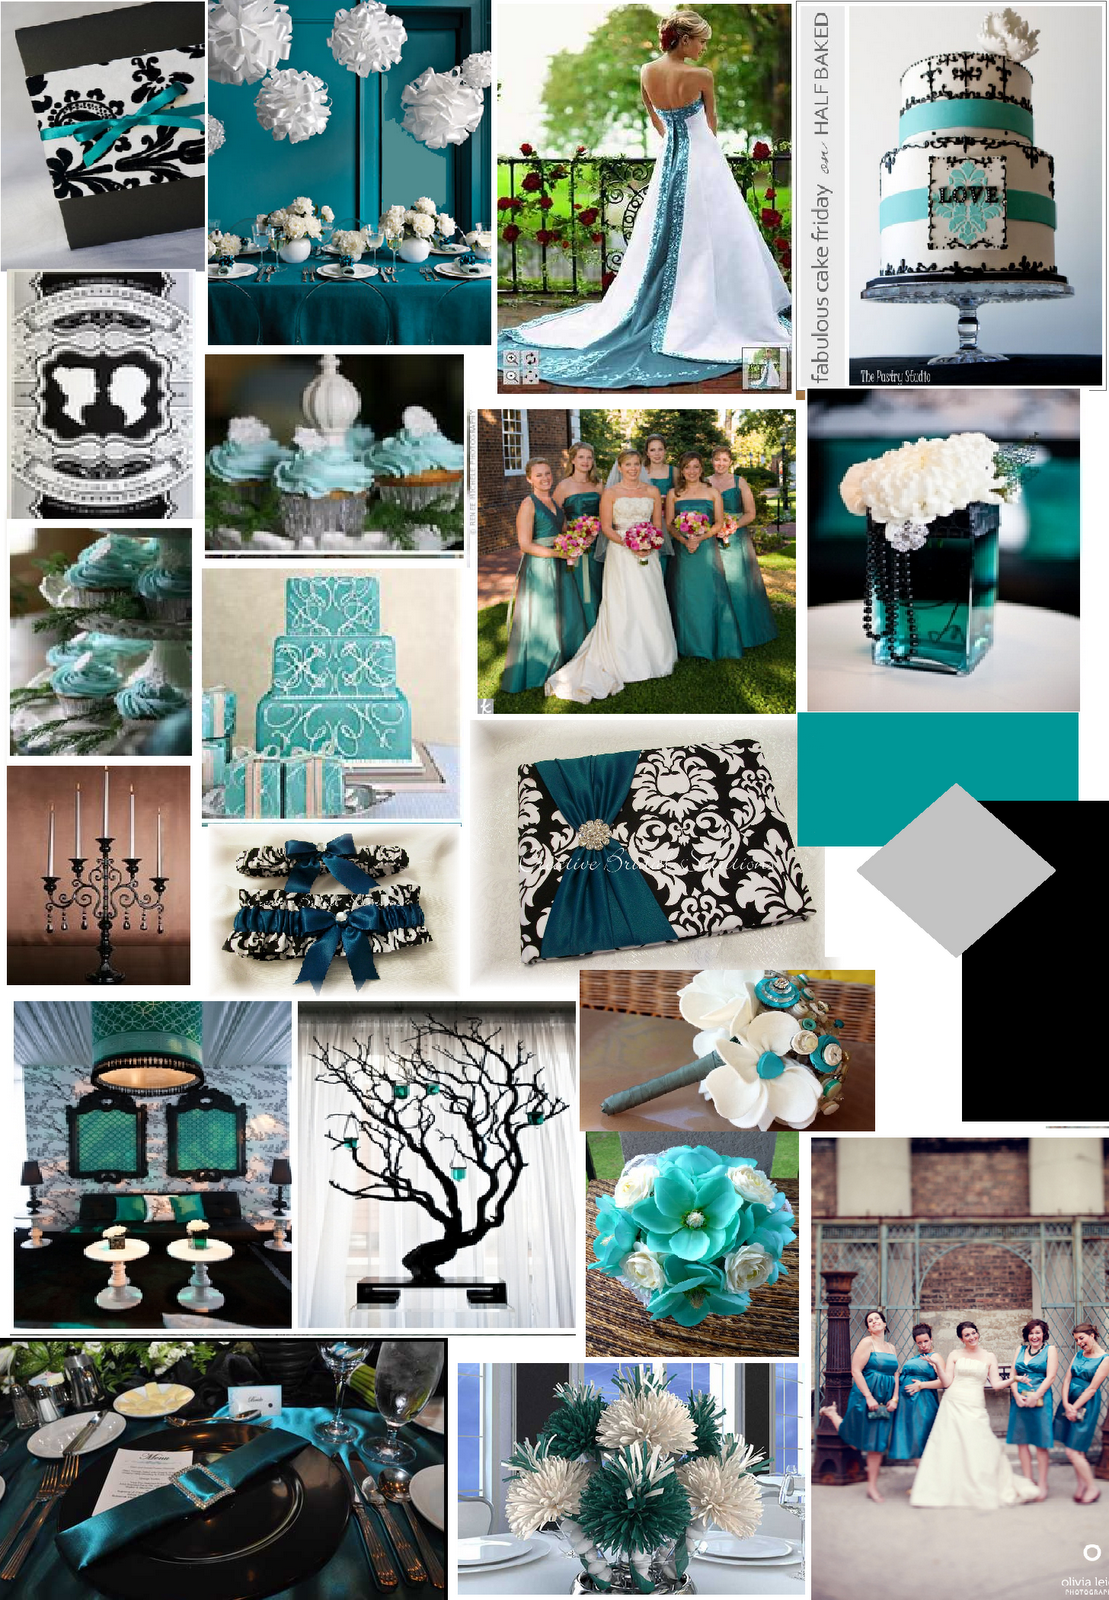 teal and silver wedding | rhodeshia's blog: teal and silver